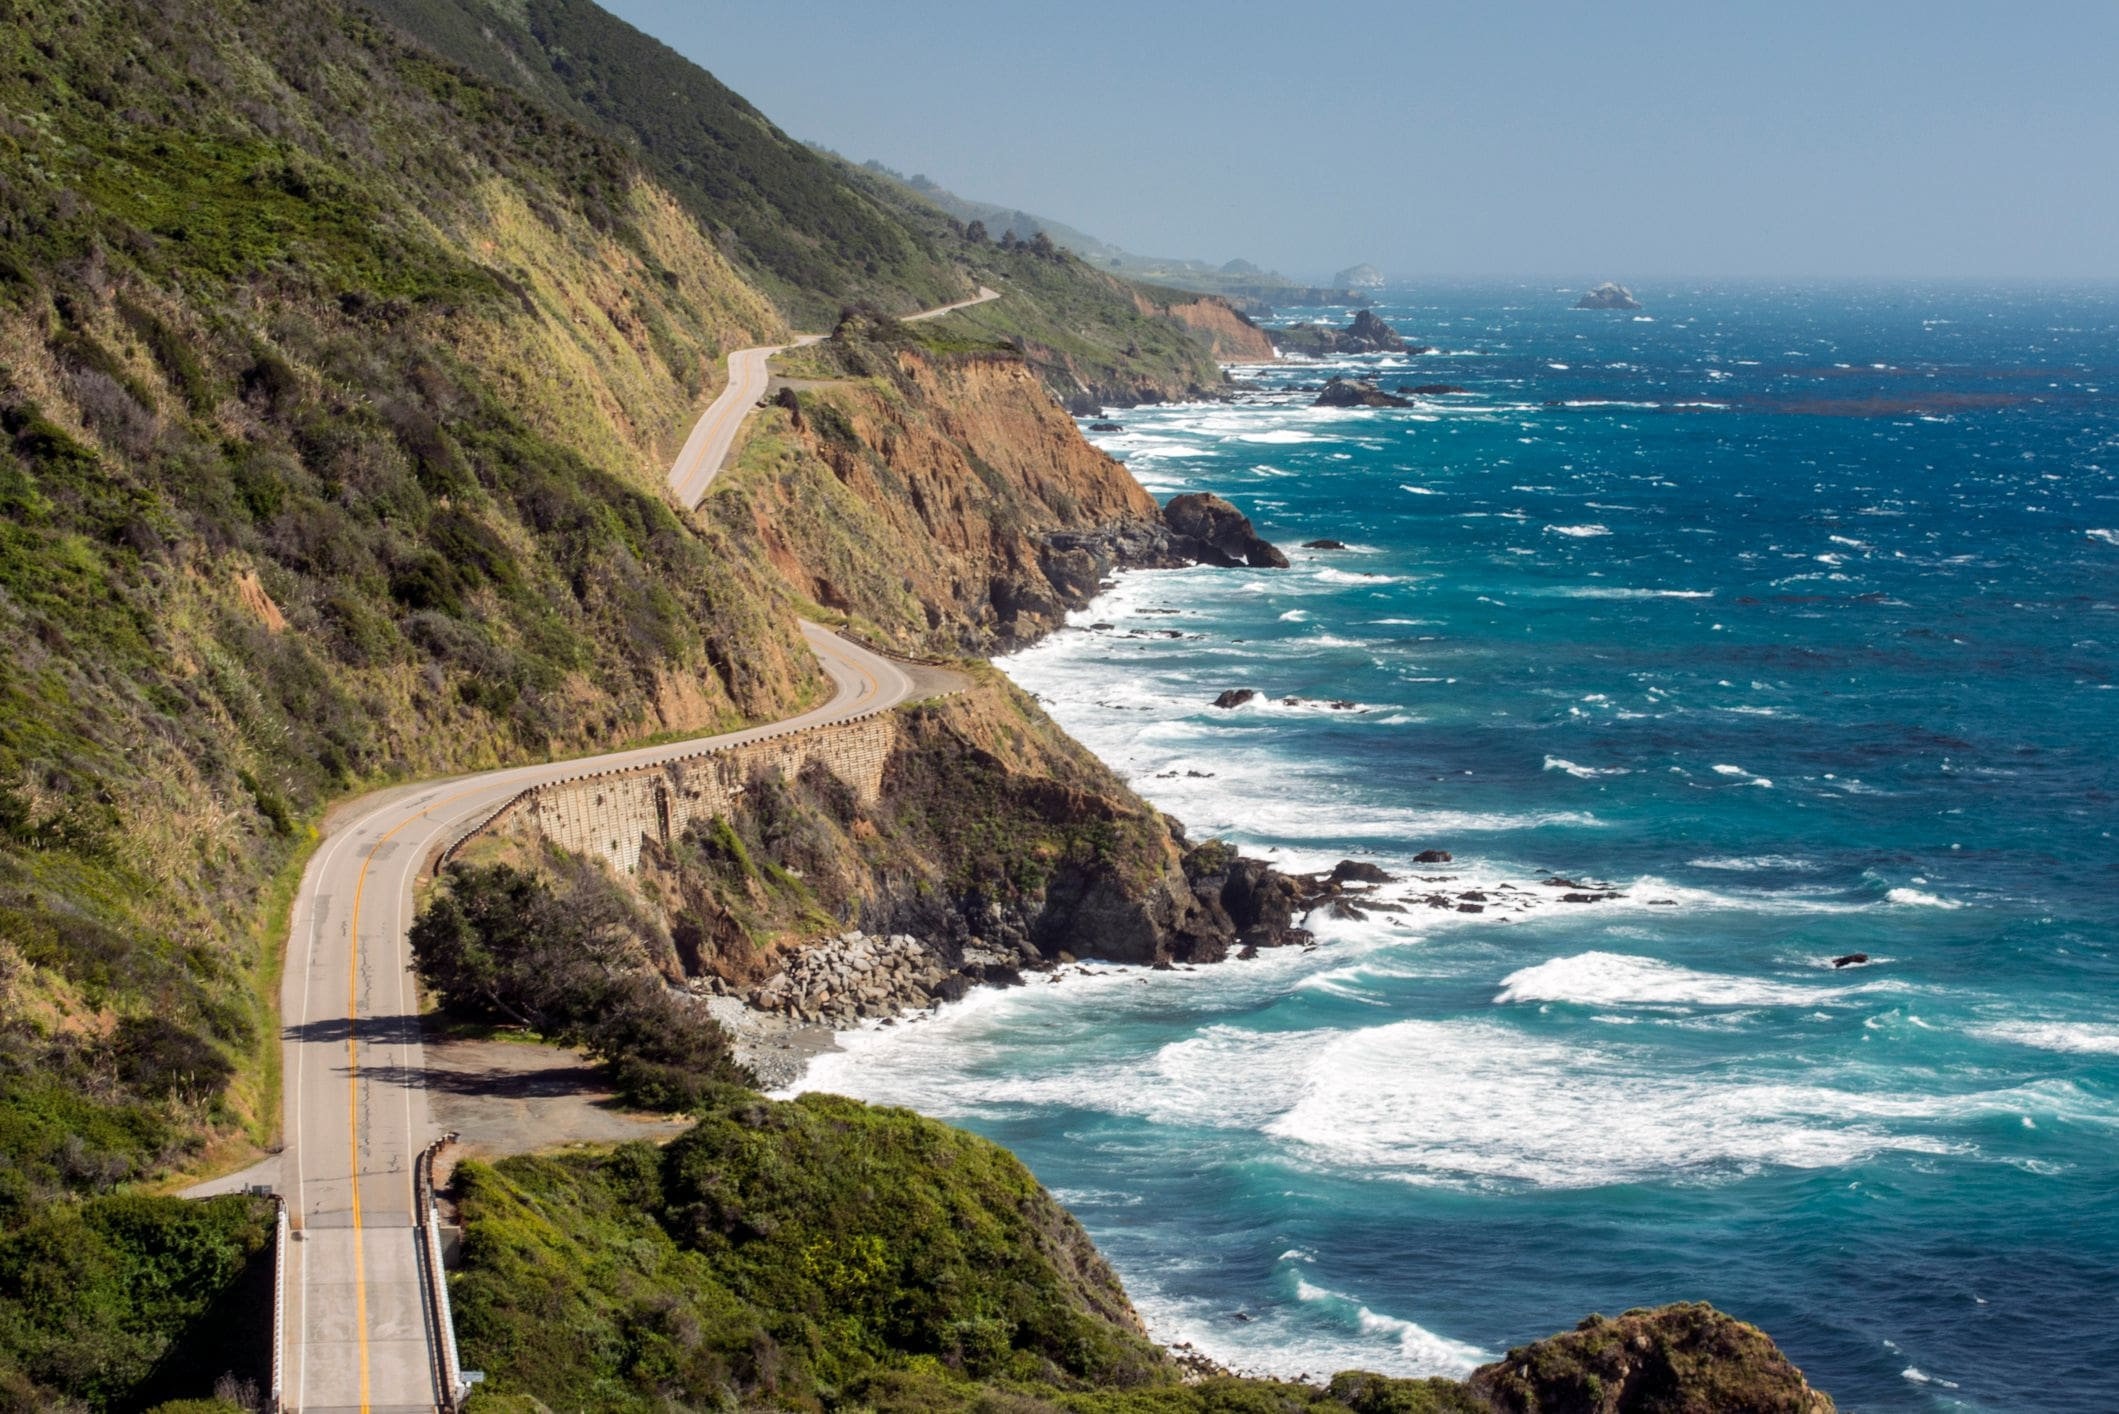 2-Day 'Highway 1 & Carmel' Experience